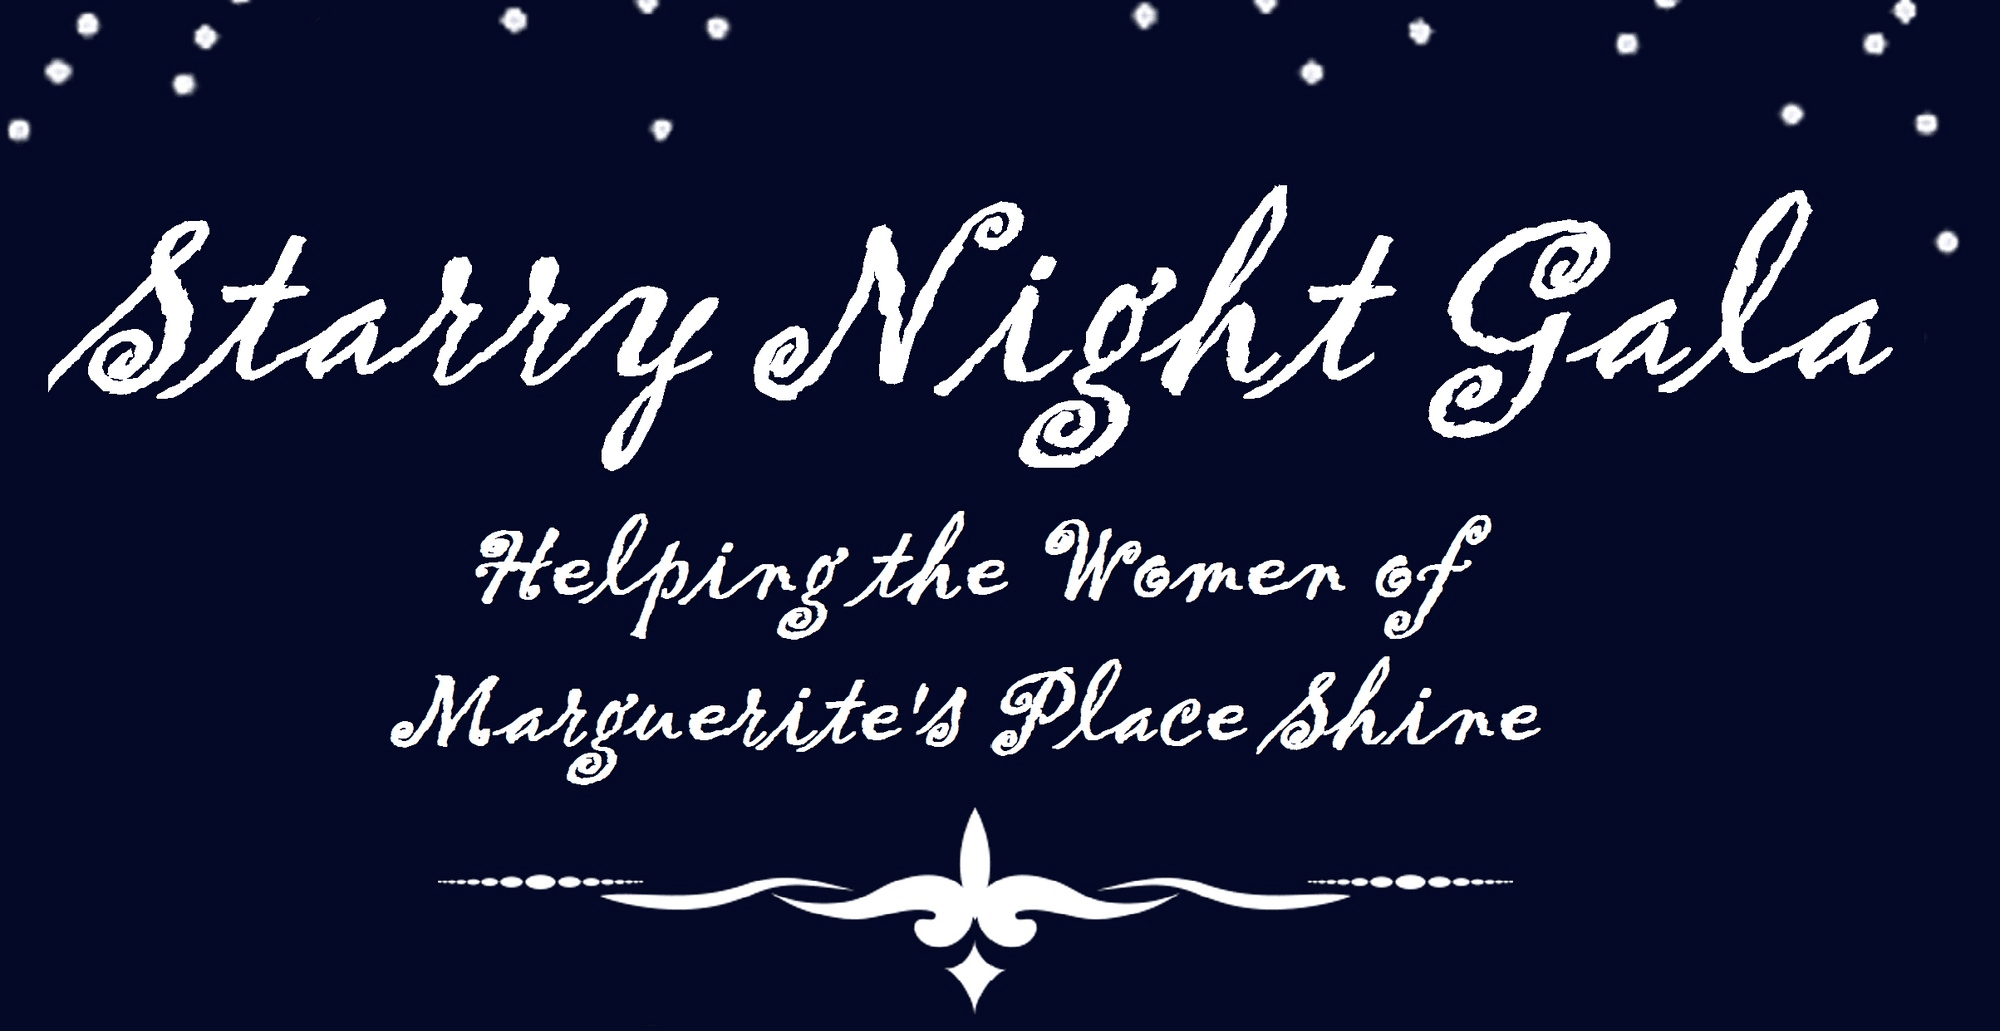 Dark blue background with white stars and font with event name and brief description of host Marguer